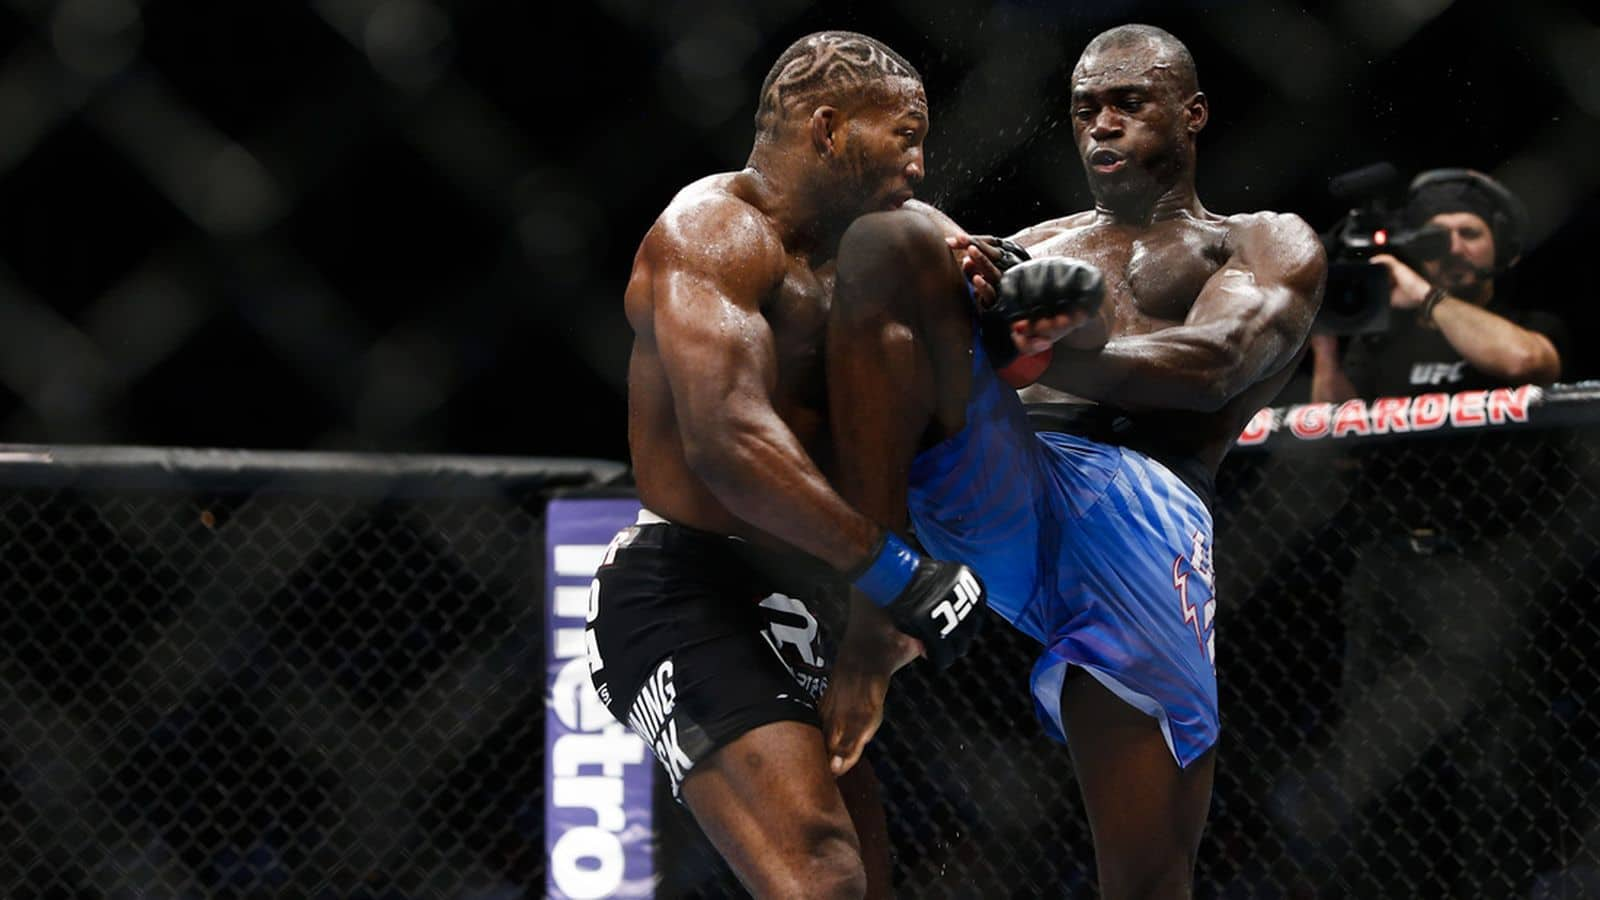 095_john_howard_vs_uriah_hall.0